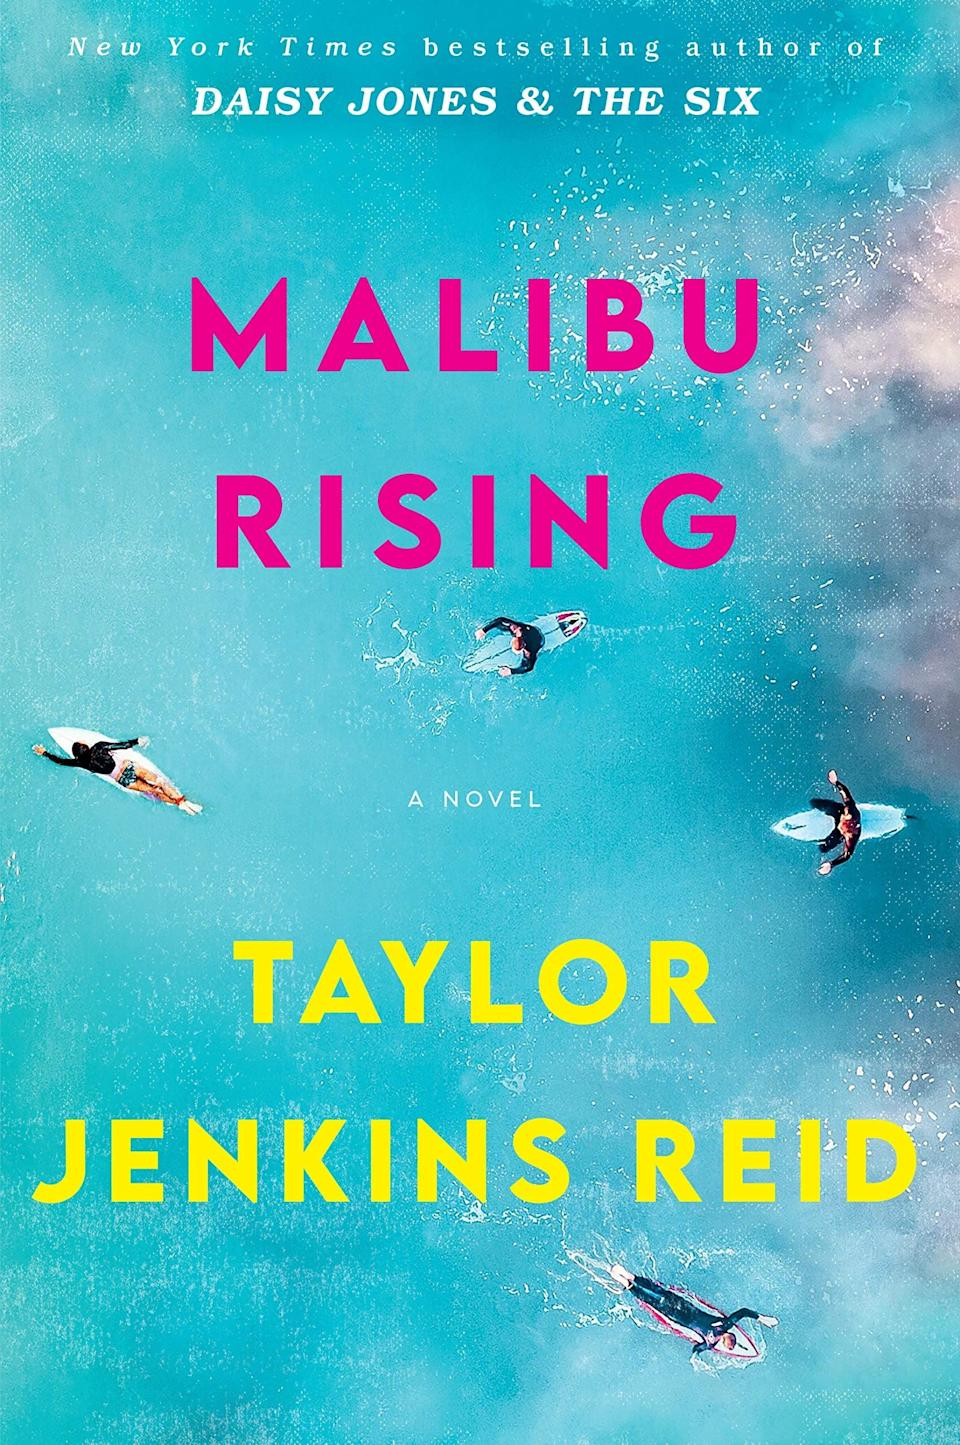 <p><strong>New York Times</strong> bestselling author Taylor Jenkins Reid's highly anticipated new novel, <span><strong>Malibu Rising</strong></span>, is hitting shelves just in time for the summer. Set during one fateful night in the 1980s, <strong>Malibu Rising</strong> chronicles an end-of-summer bash thrown by the wealthy Riva family and the ways in which it changes the course of each of the four Riva siblings' lives. </p> <p><em>Out May 25</em></p>